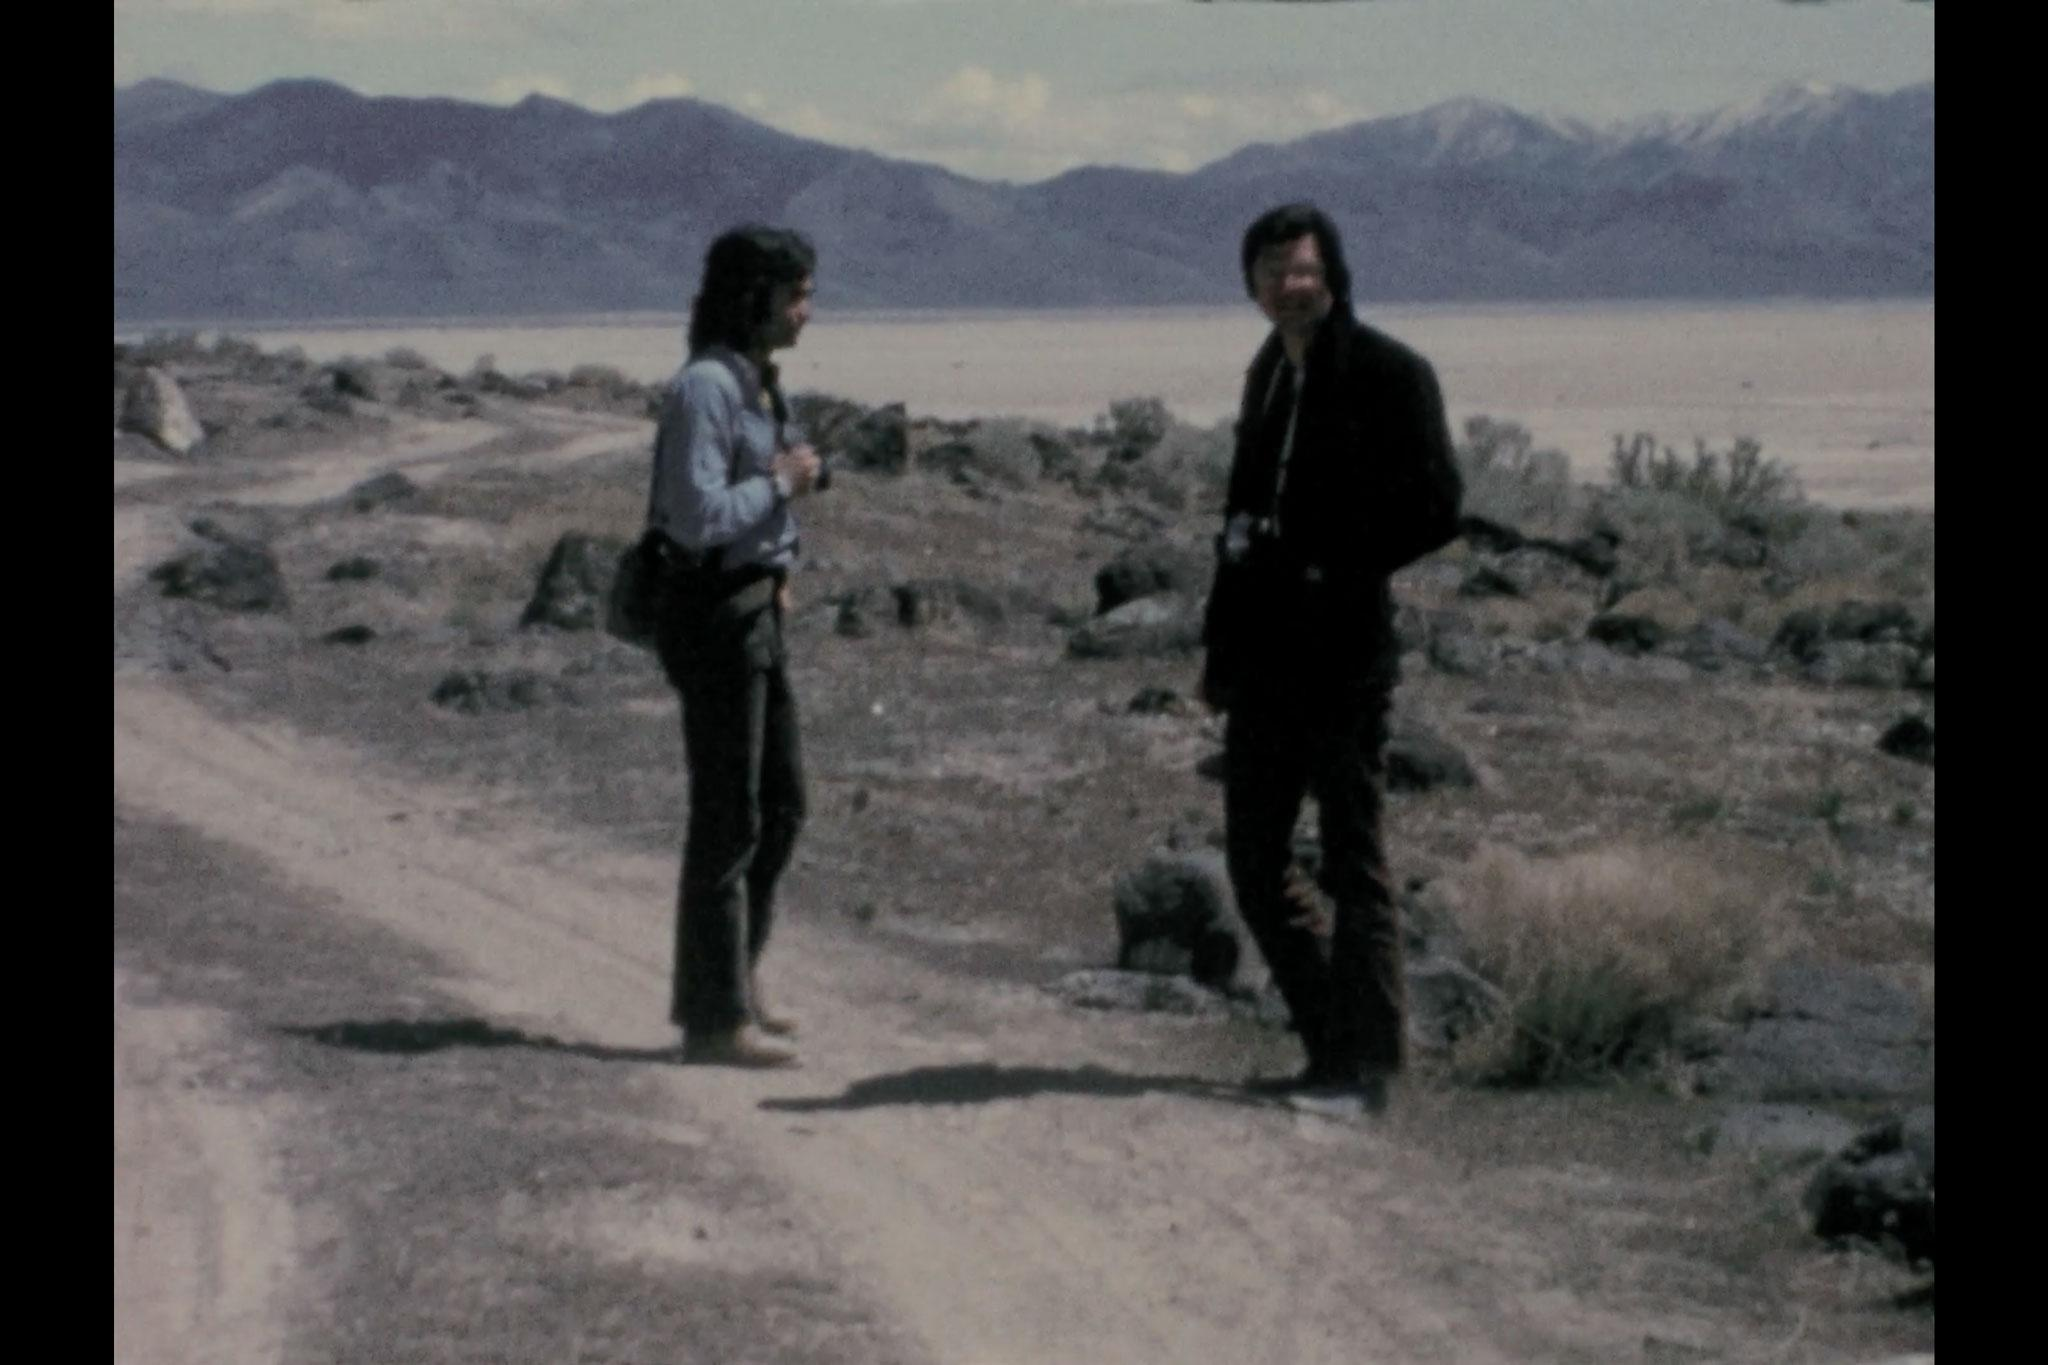 Two figures standing on a dirt road with mountains in the background